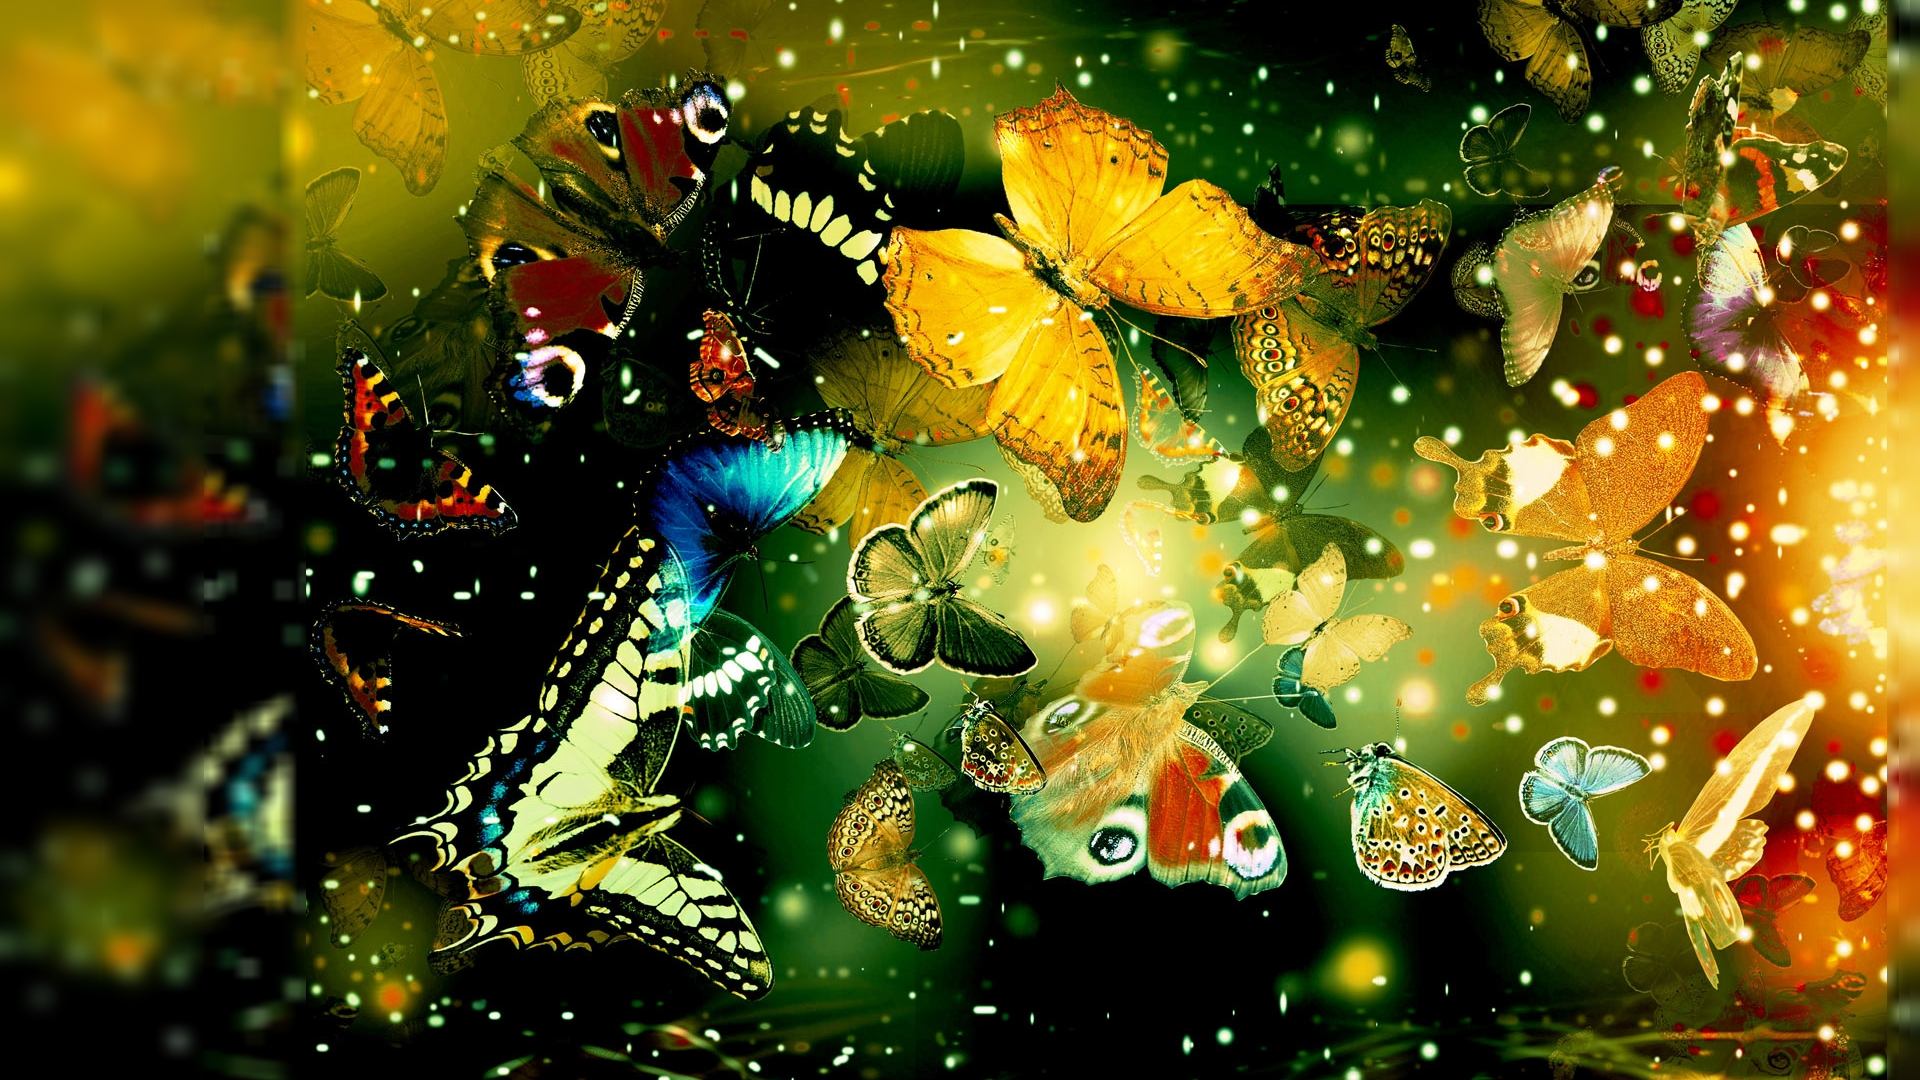 Butterfly-1920x1080-Need-iPhone-S-Plus-Background-for-IPhoneSPlus-Follow-iPhon-wallpaper-wpc5803101